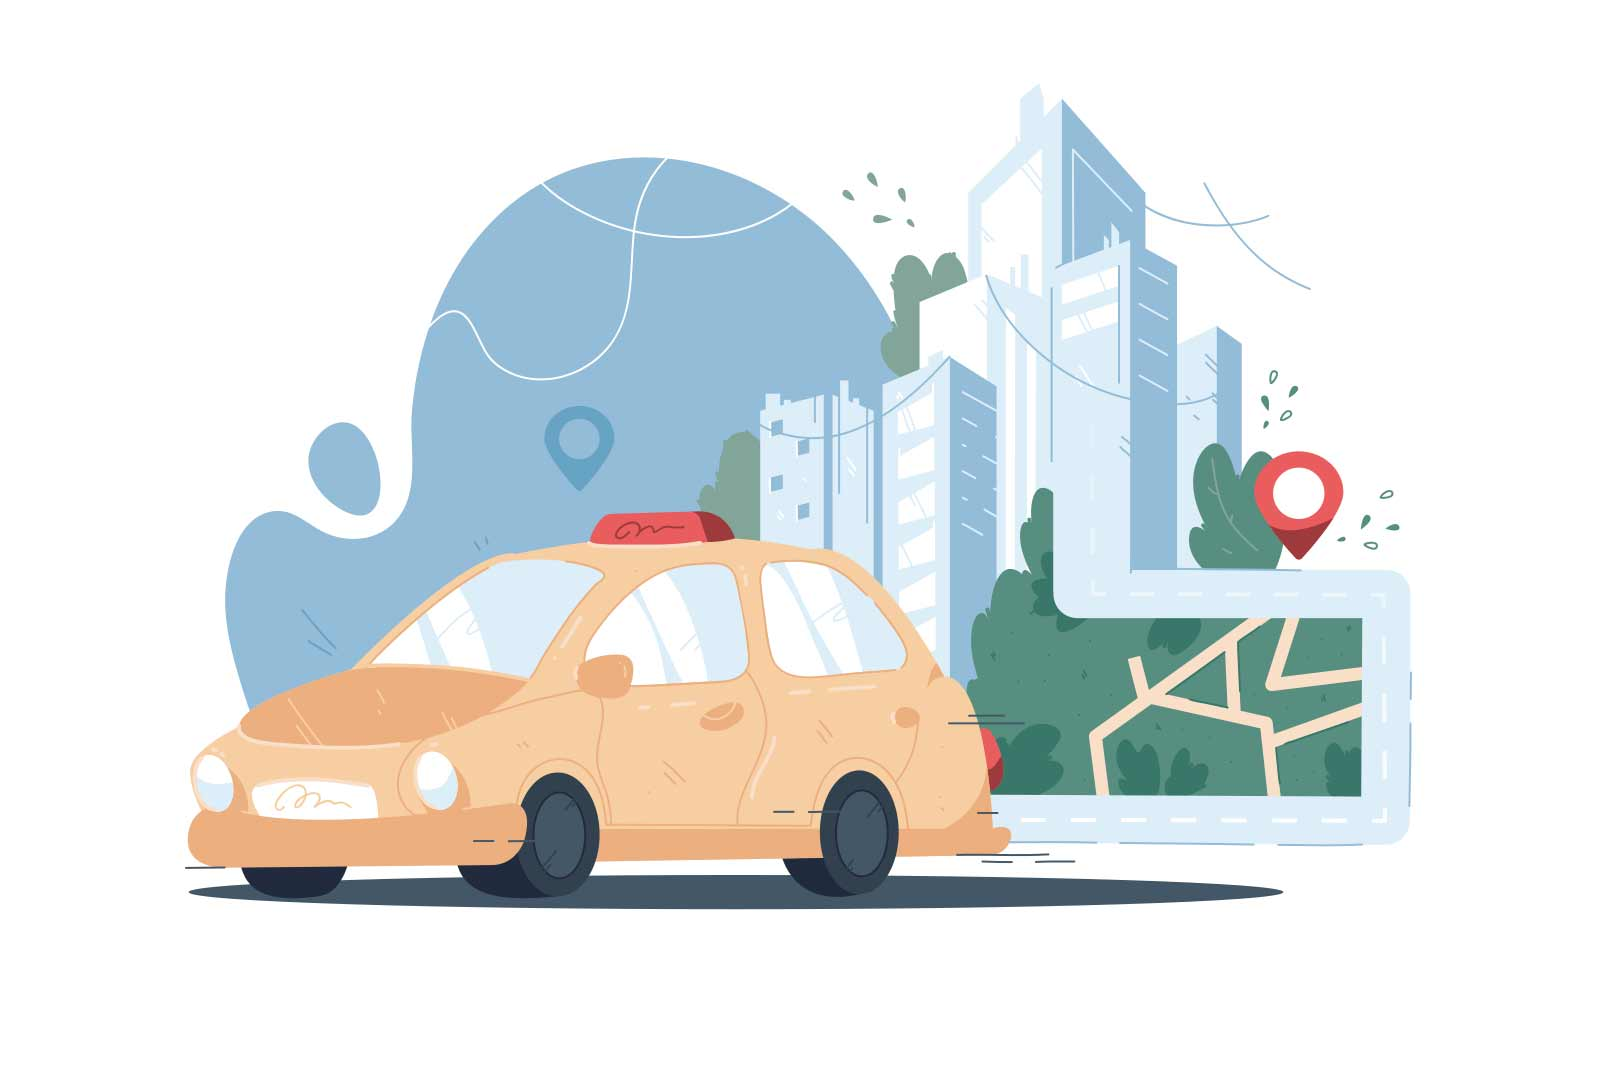 Taxi service online app vector illustration. Yellow taxi cab and online city map with location pin on cityscape background flat style concept